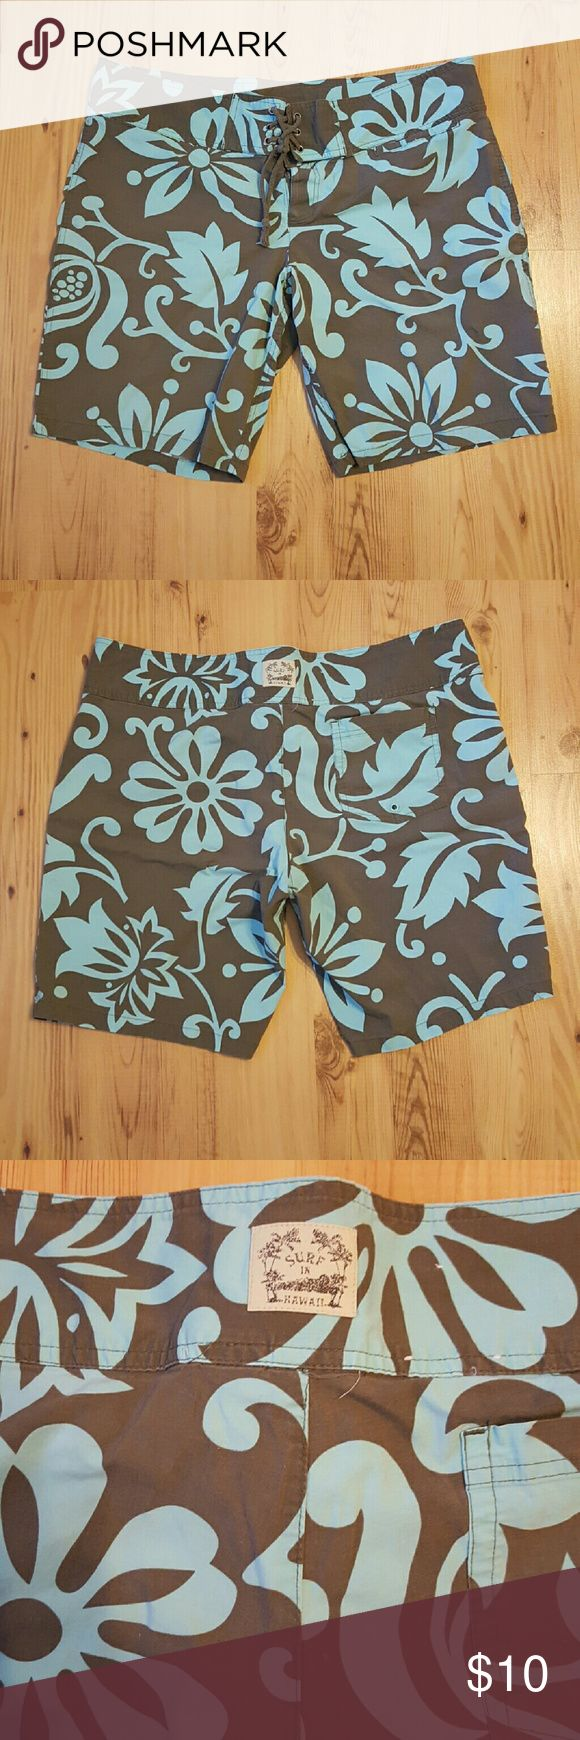 Old Navy Womens Board Shorts Old Navy Board Shorts. Brown with Blue flowers.  96% Cotton 4% Spandex. Ultra Low Waist. They have stretch. Sz XL. Old Navy Shorts